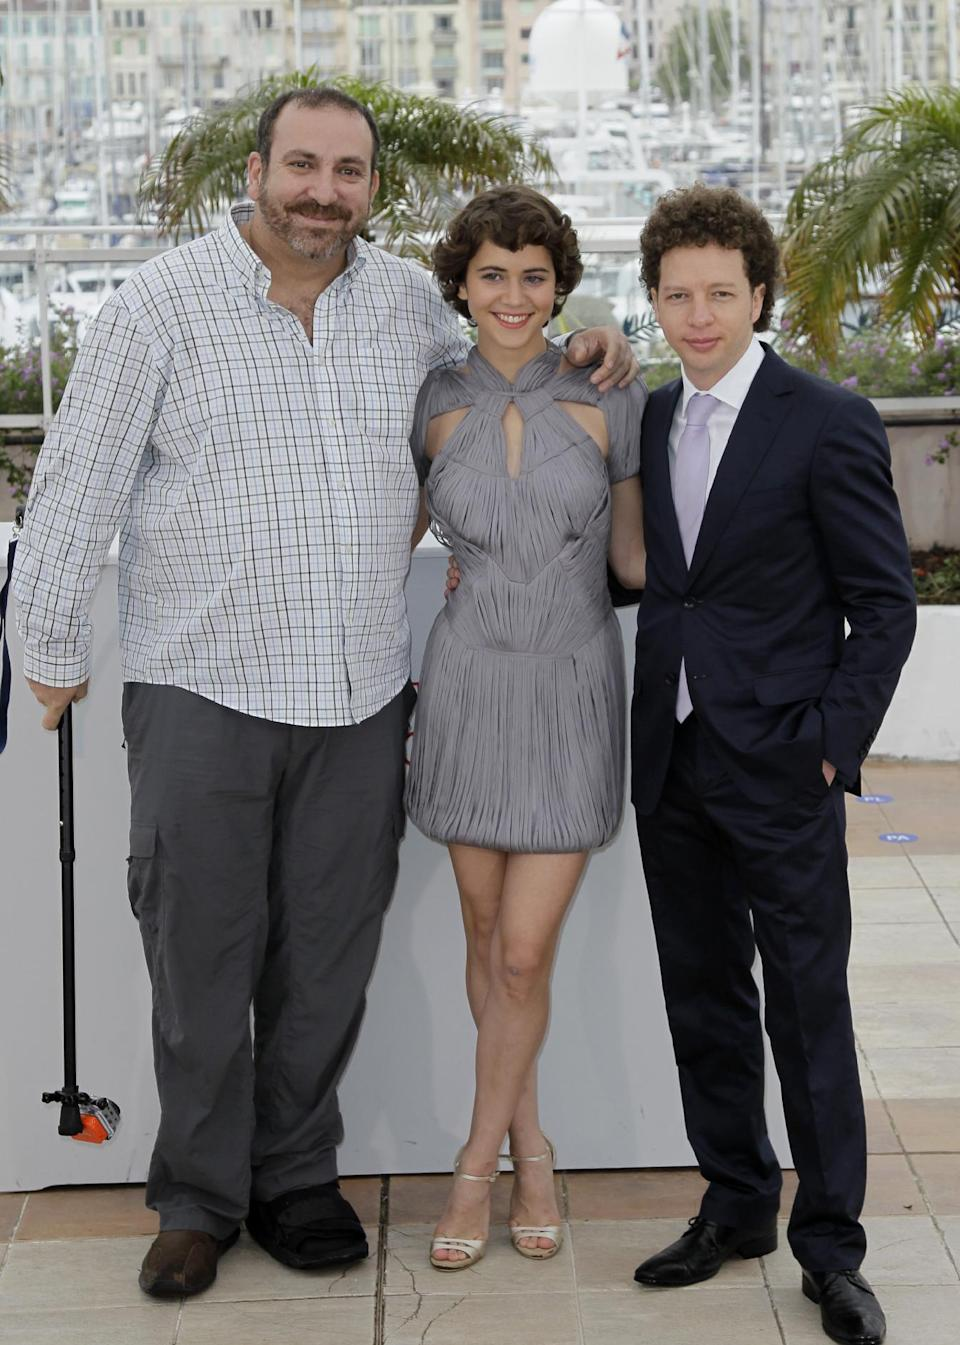 Actors Hernan Mendoza, left, Tessa La Gonzales and director Abbas Kiarostami pose during a photo call for After Lucia at the 65th international film festival, in Cannes, southern France, Monday, May 21, 2012. (AP Photo/Francois Mori)